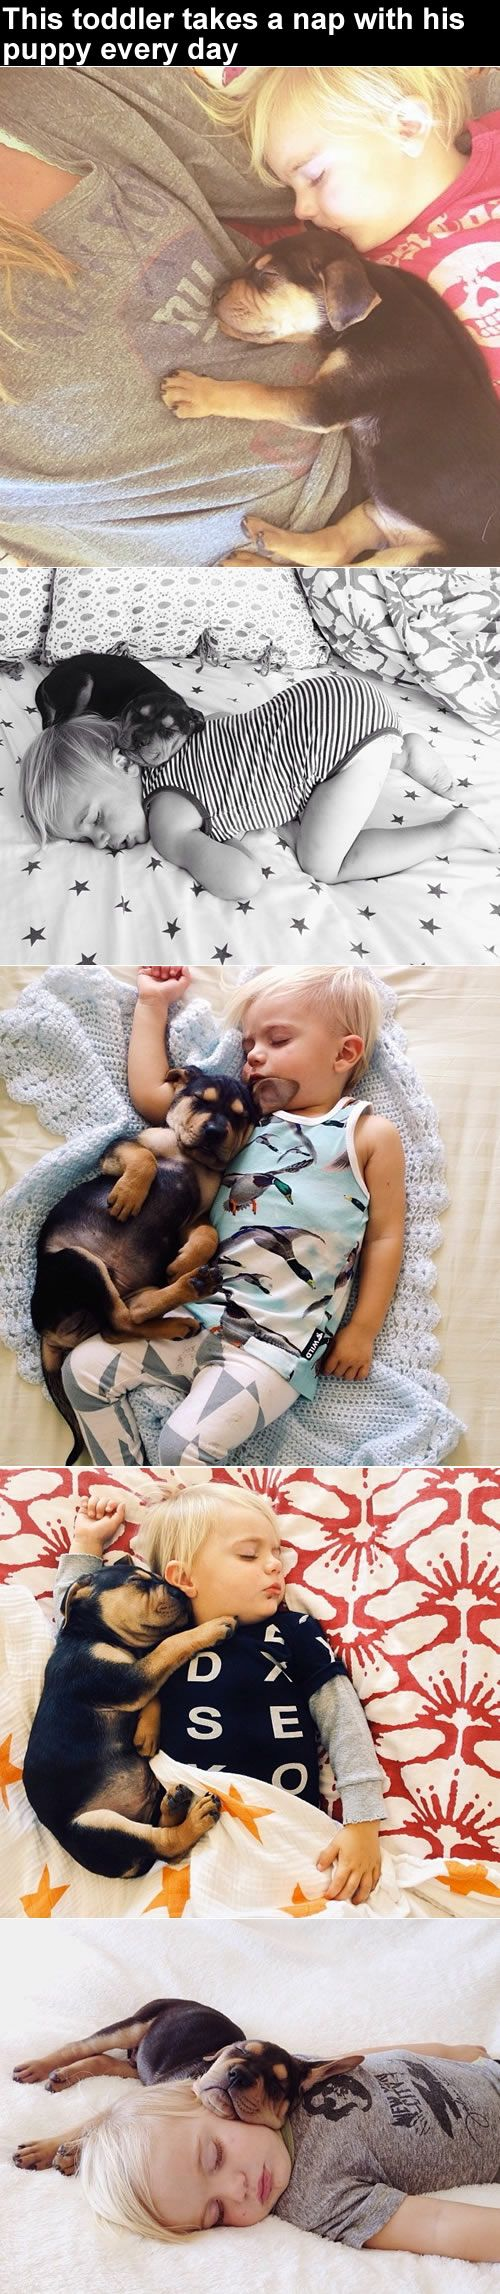 best children images on pinterest cute kids families and kid